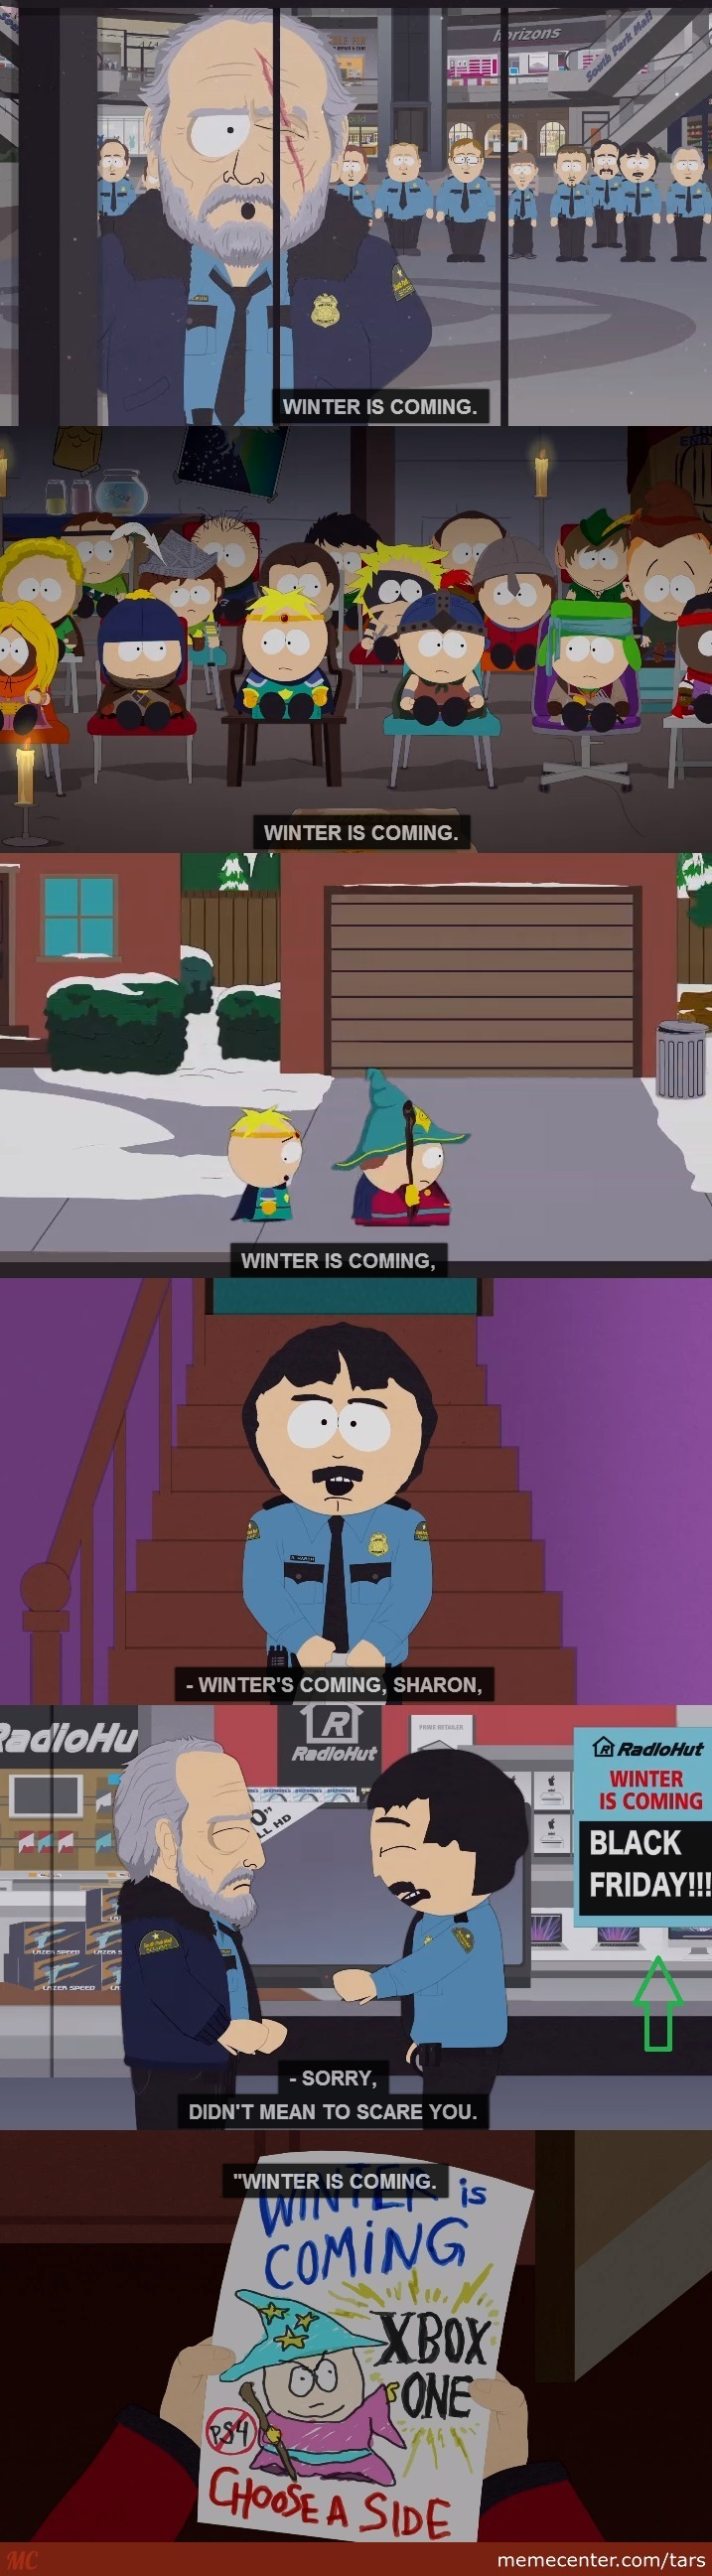 south park goes game of thrones_o_2476541 south park goes game of thrones by tars meme center